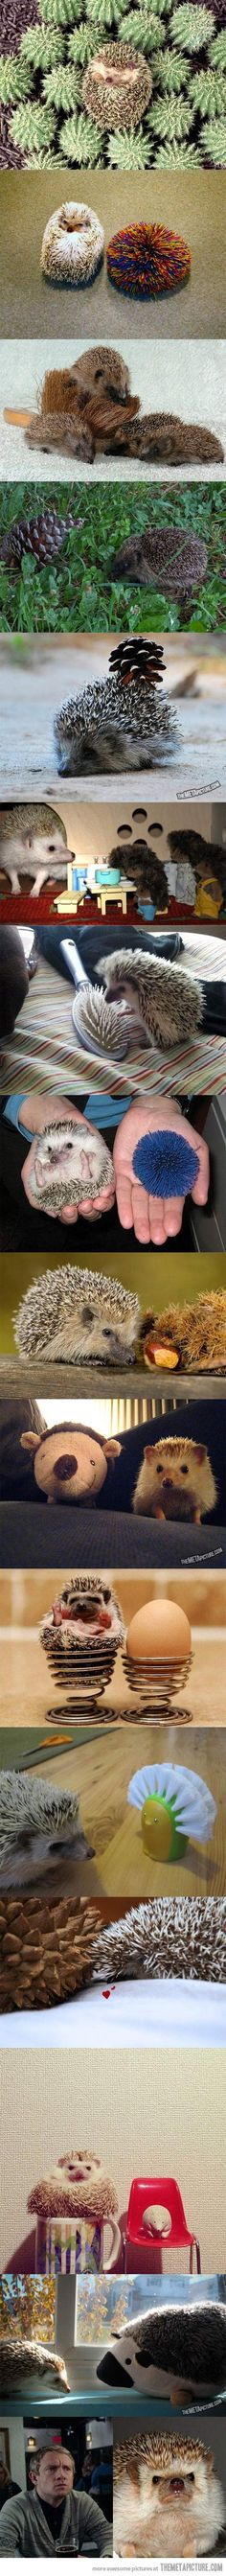 can i please have a hedgehog!? please?